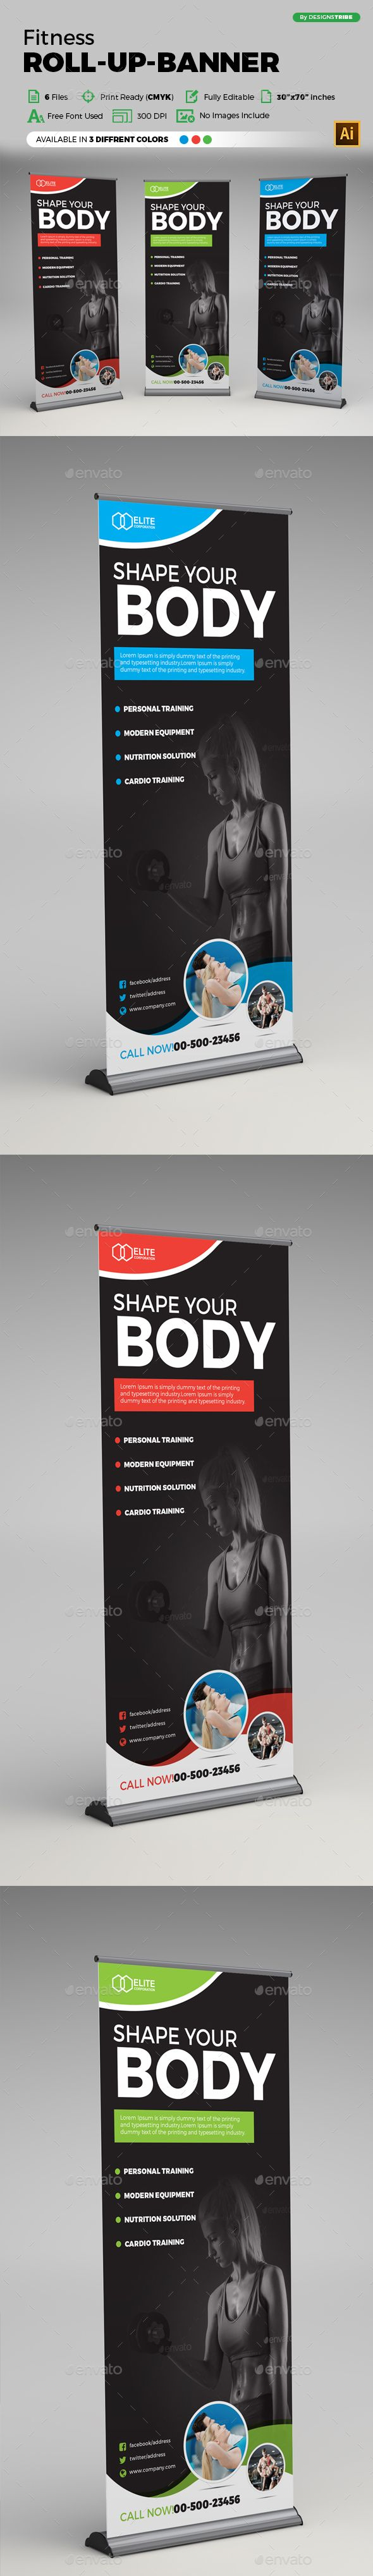 Fitness Roll-up Banner by arsalanhanif Corporate Business Roll-up Banner Templat...